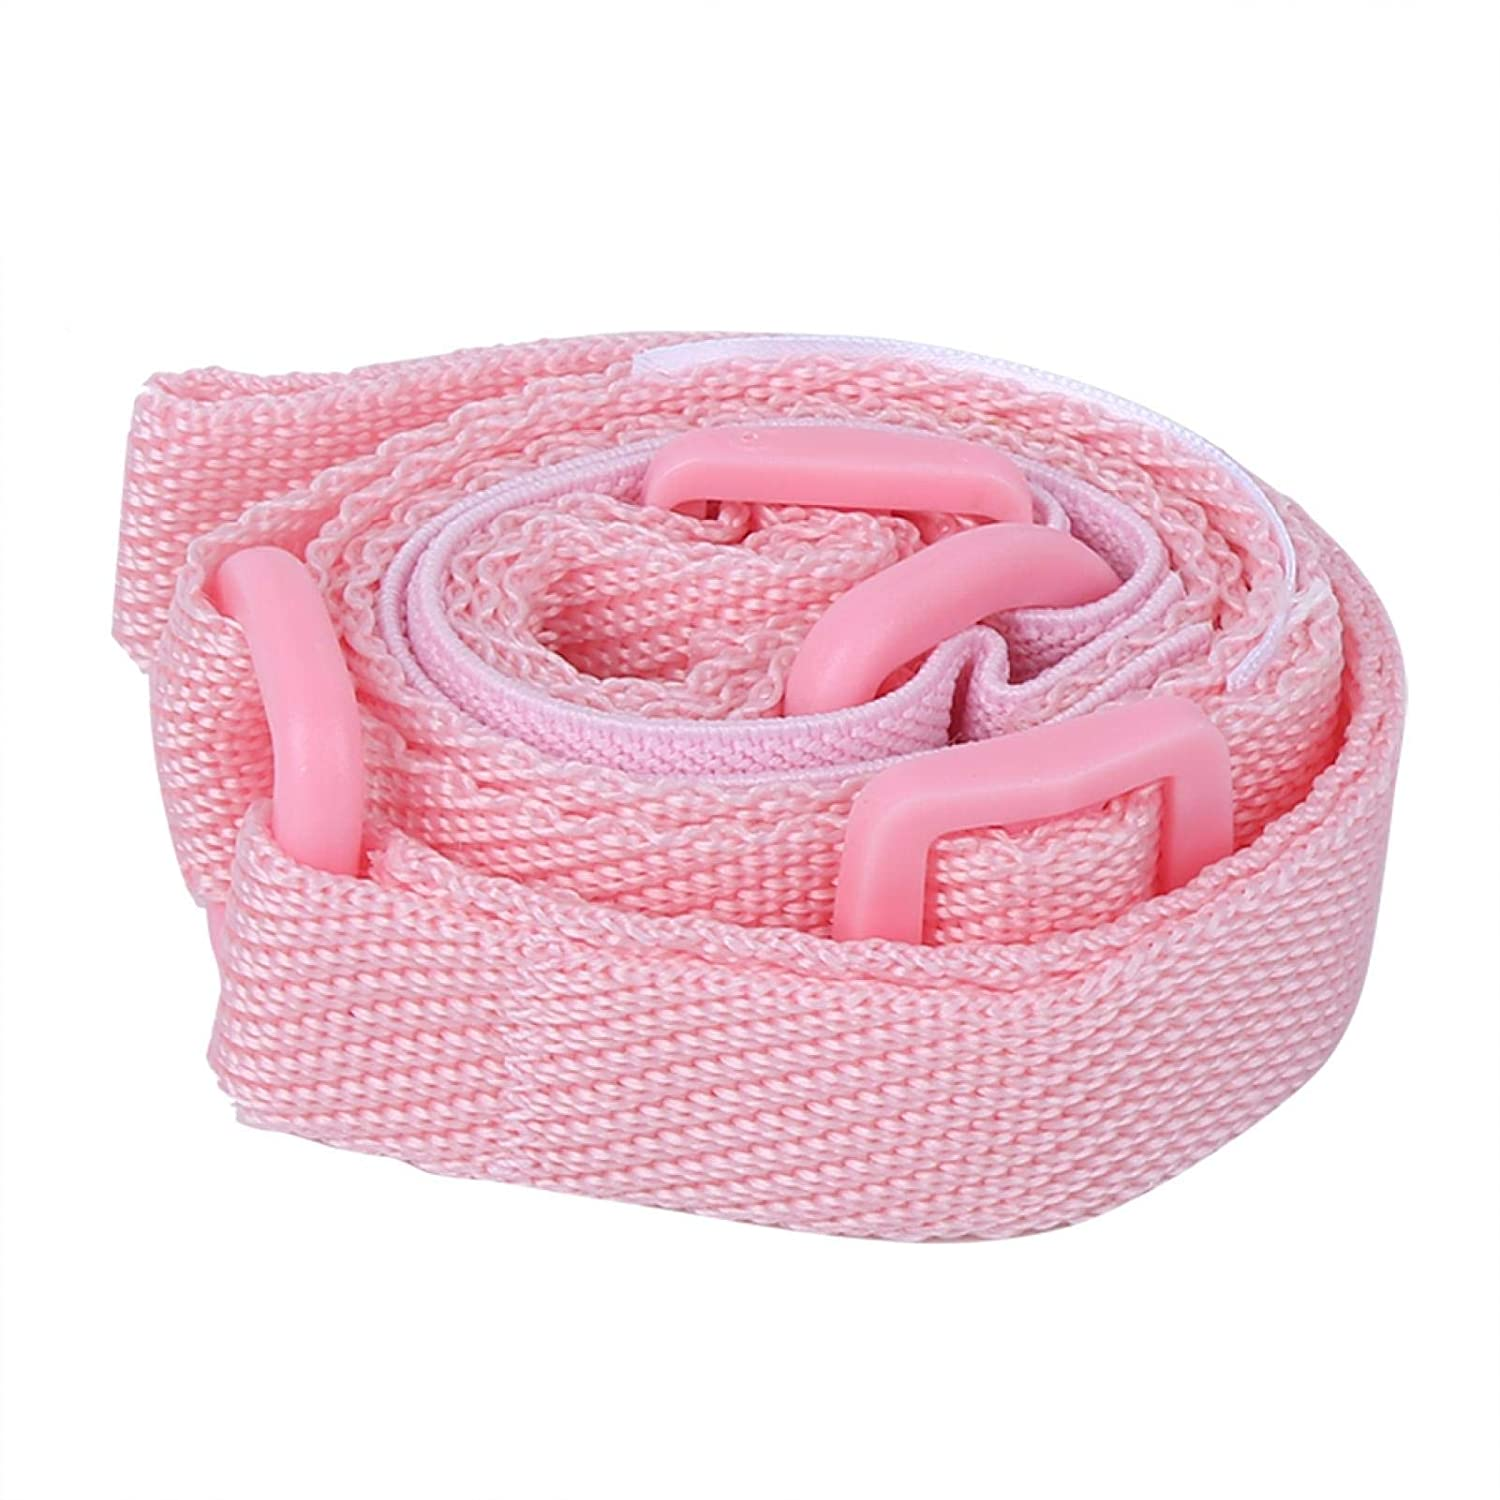 Safety Wristband, Strong Elasticity Anti Lost Wrist Link, Anti‑Lost for 1‑8 Years Old Child 1‑8 Years Old Kid Parks Shopping Mall(Pink)